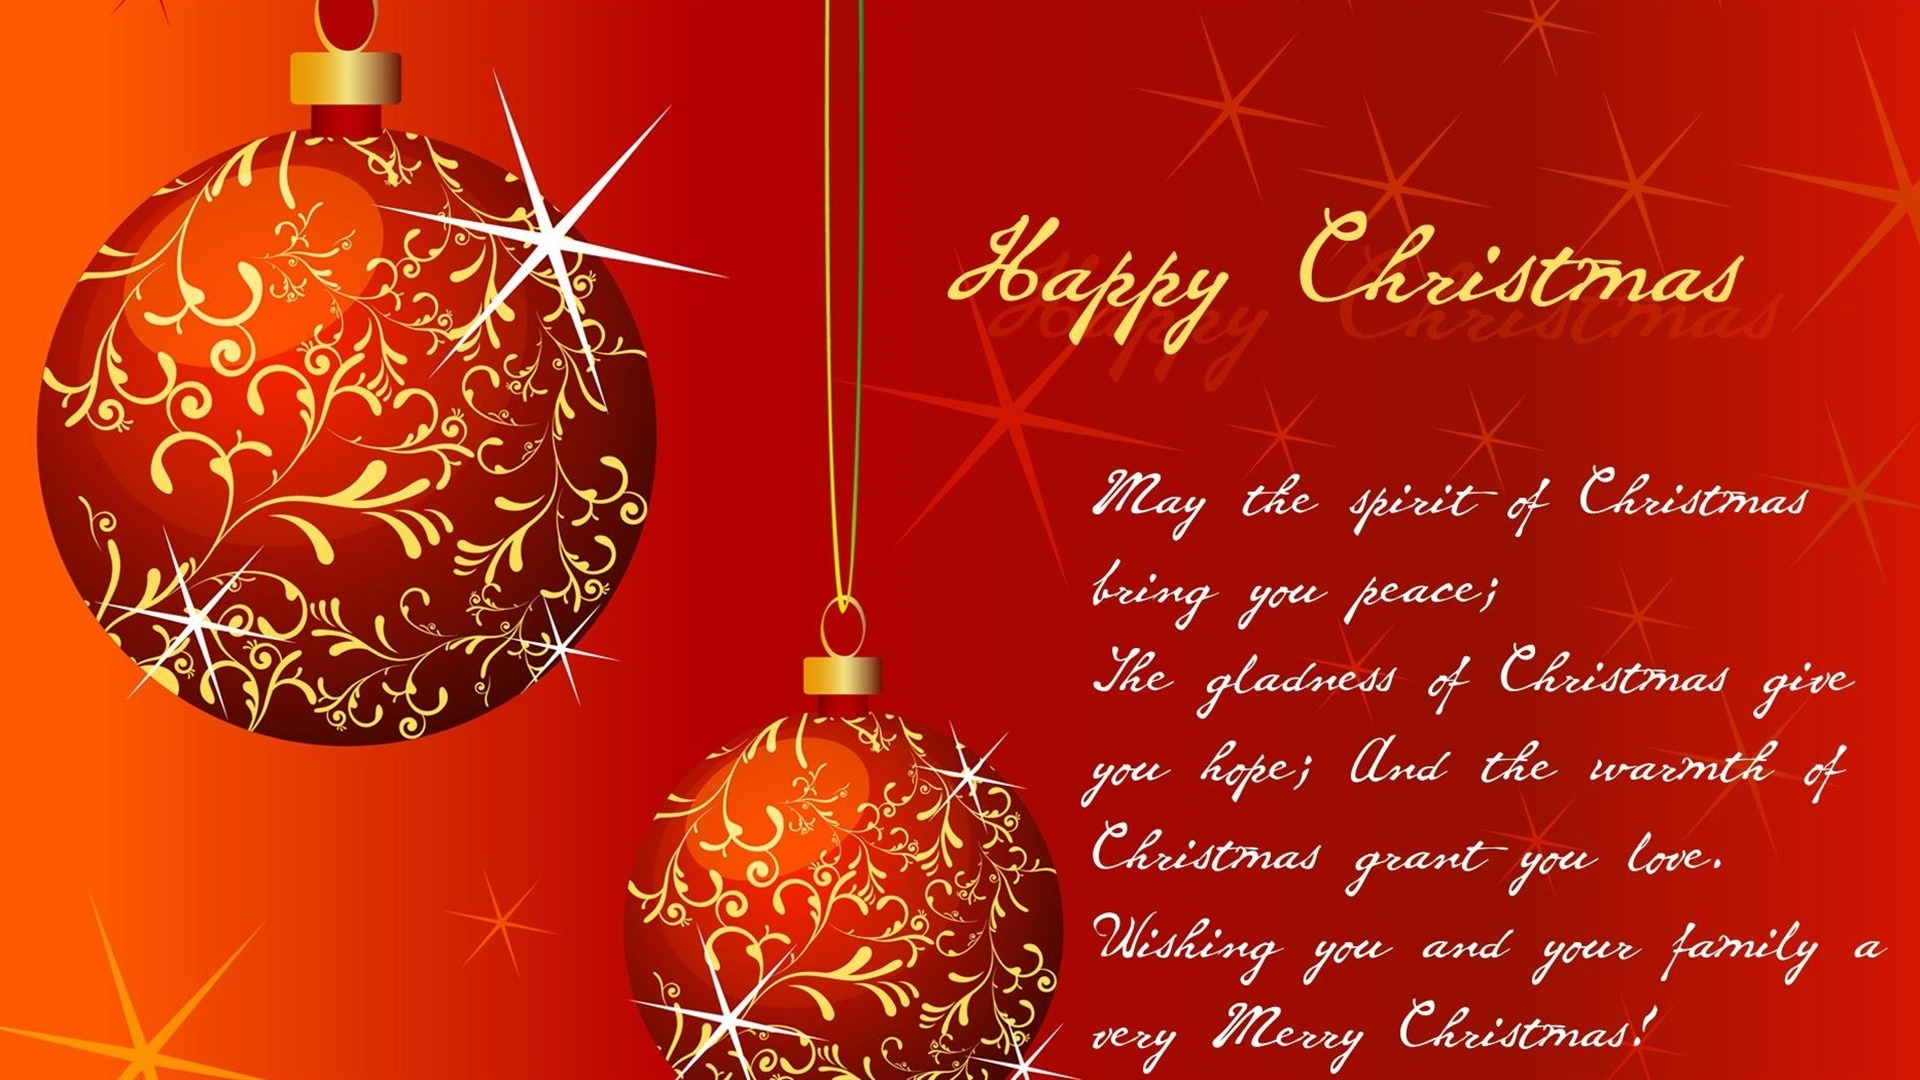 christmas greetings hd wallpapers 1080p